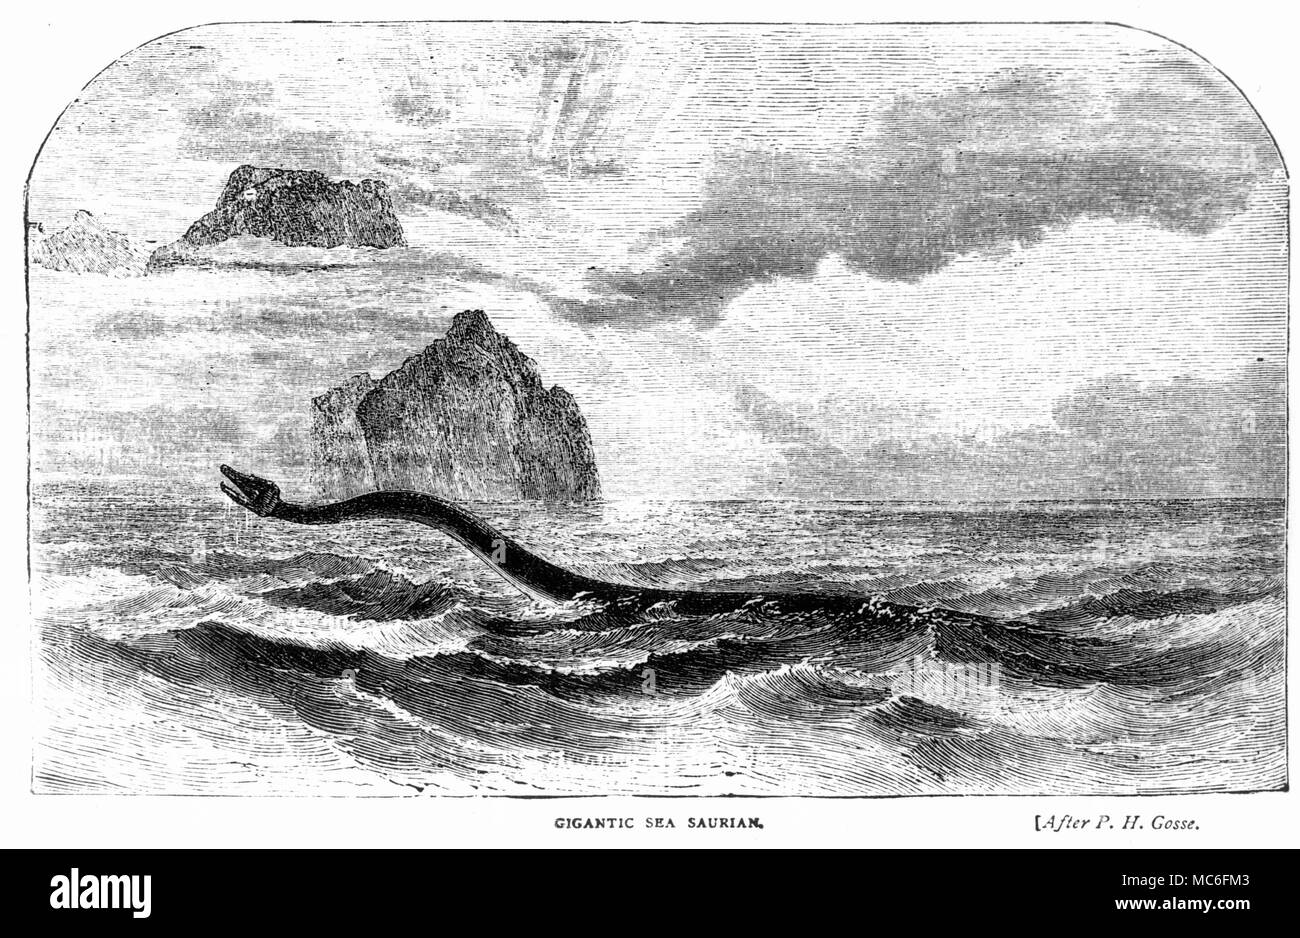 'Gigantic Sea Surian' - woodengraving of sea-monster, after the famous print used to illustrate Gosse's natural history. - Stock Image